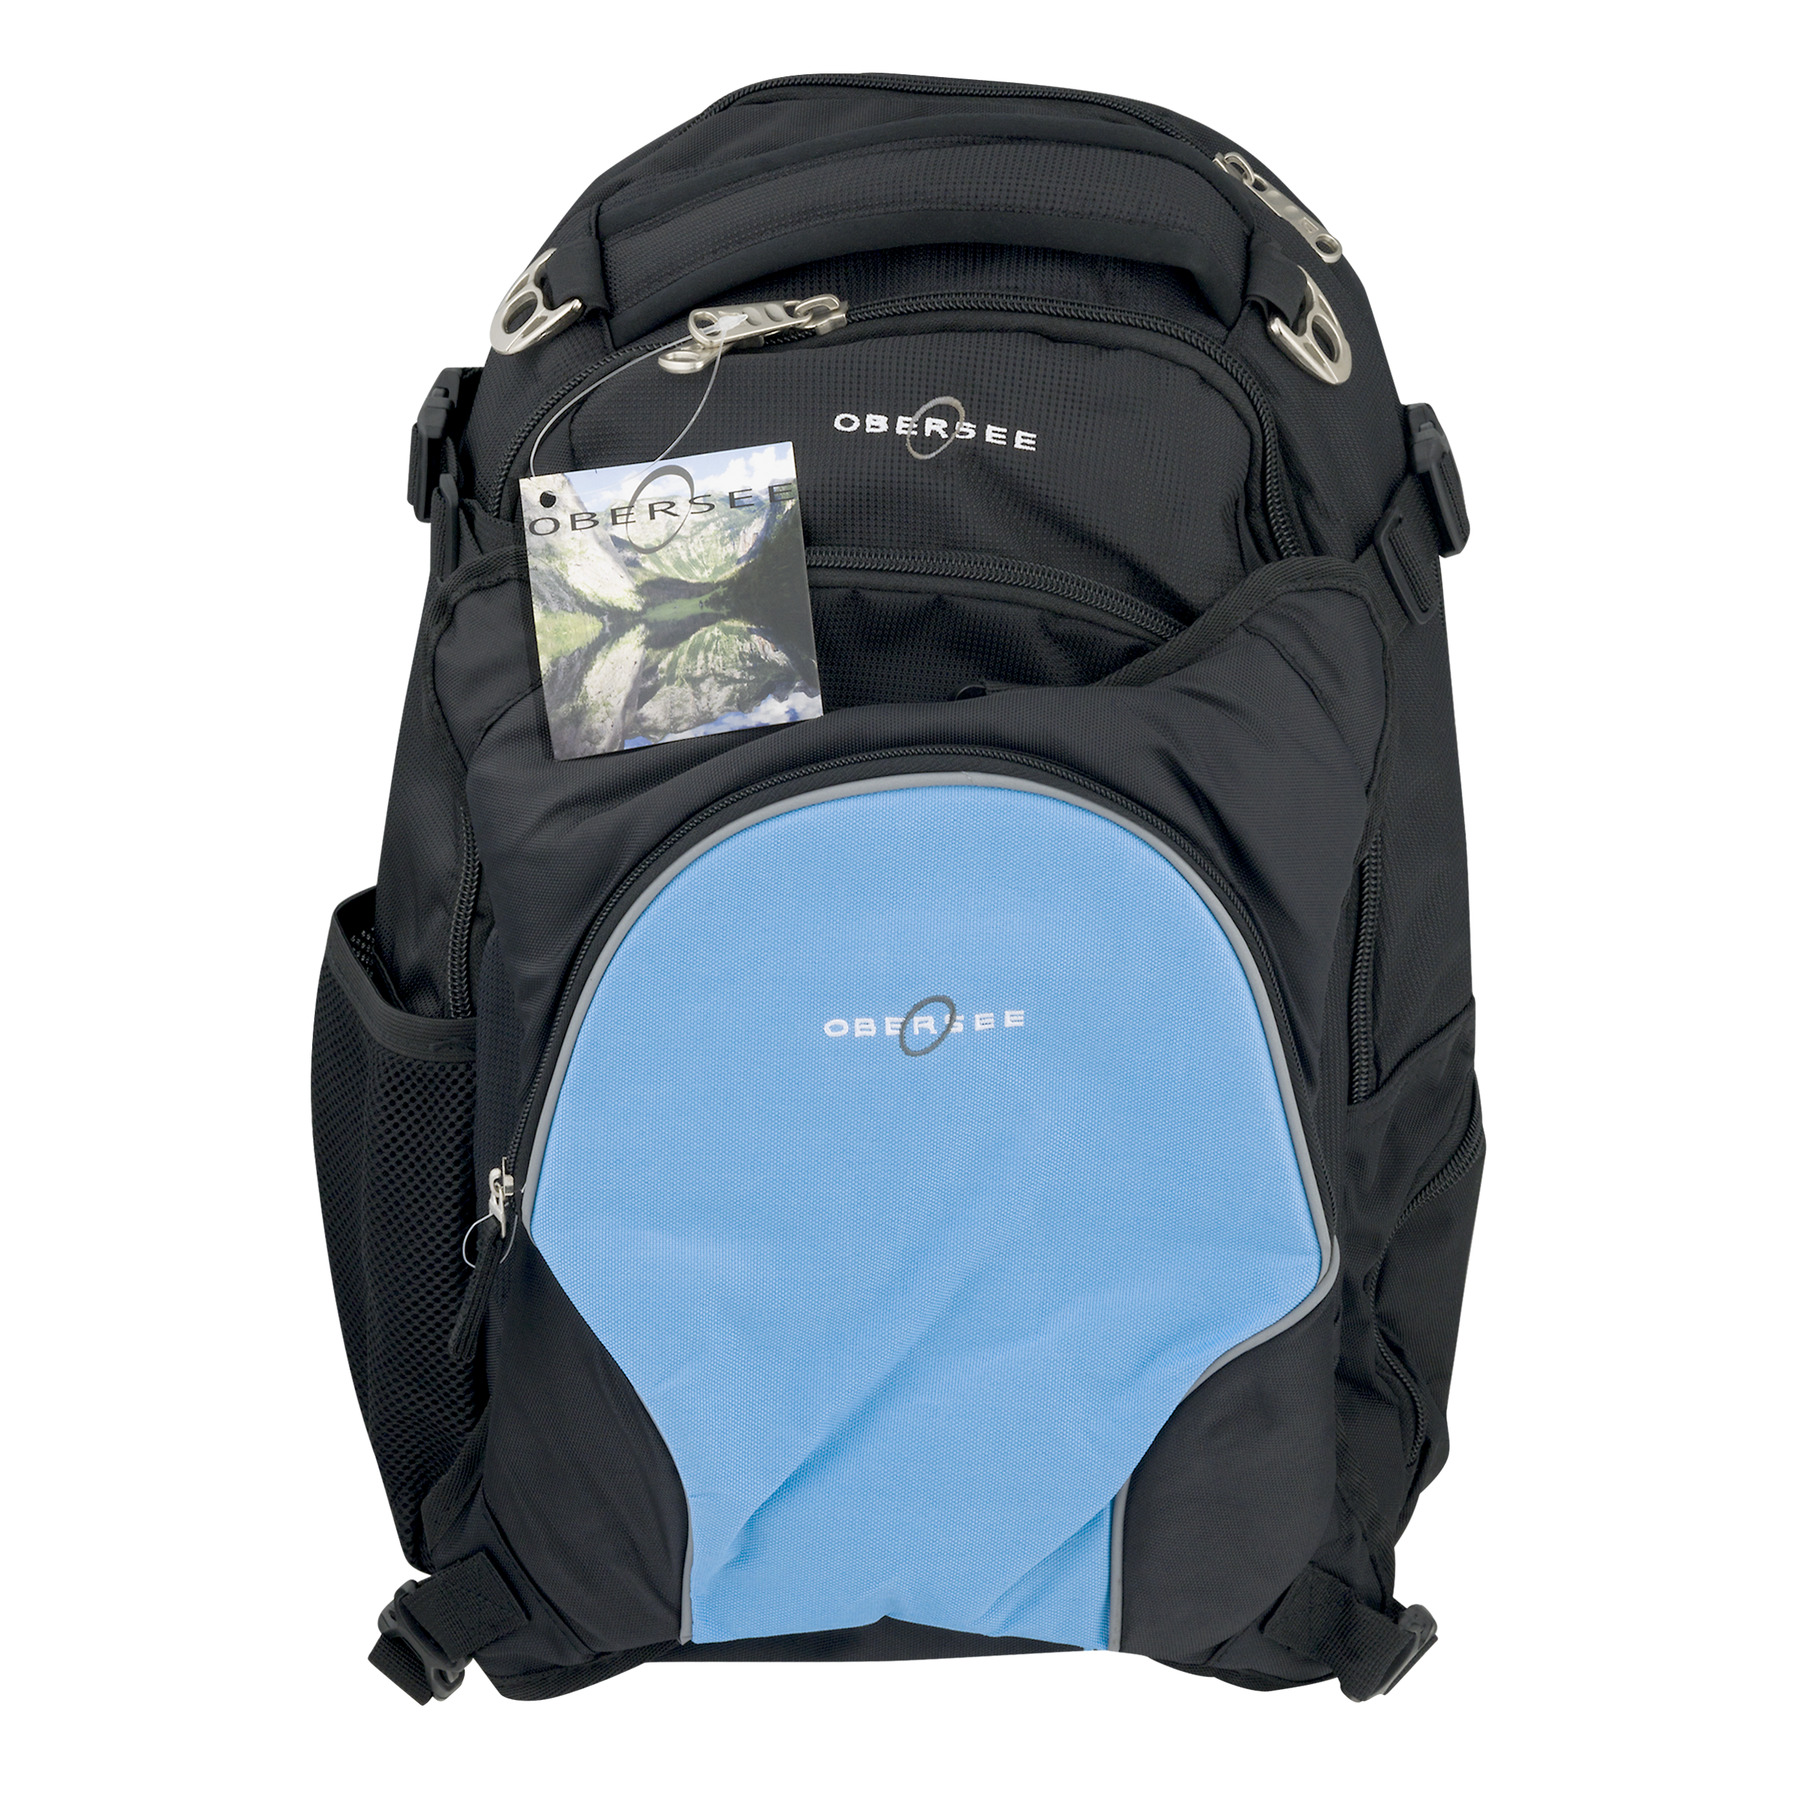 Obersee Oslo Diaper Bag Backpack With Cooler Black/Cloud, 4.0 CT